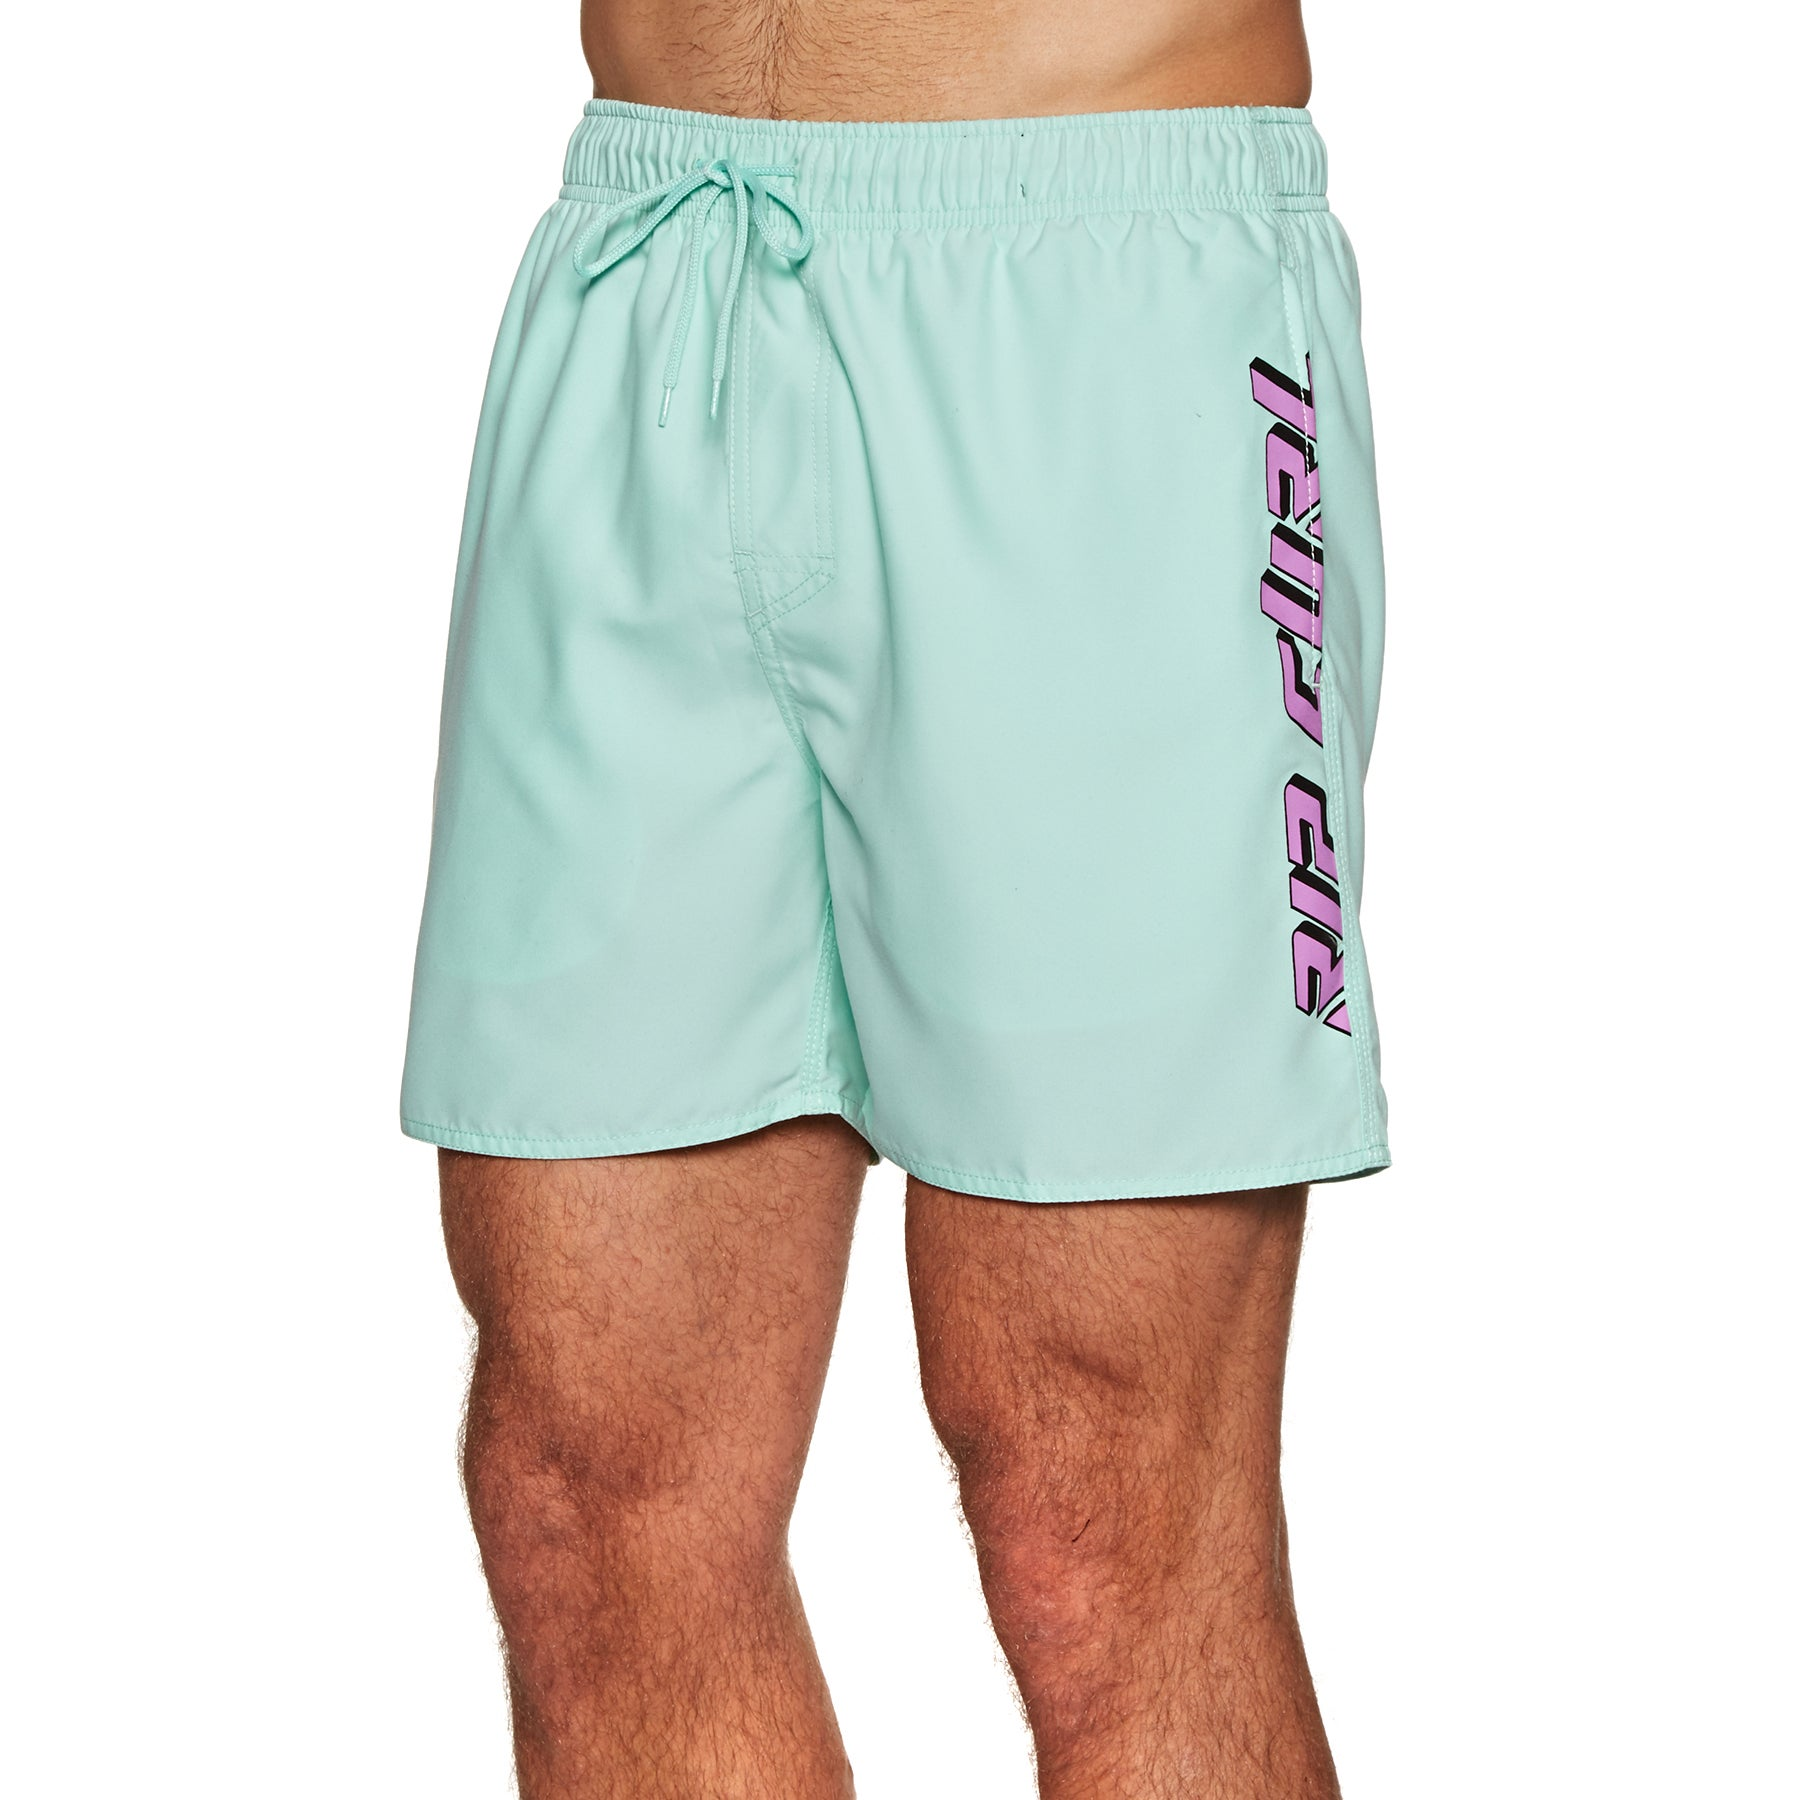 Boardshort Rip Curl Volley Timeless 16in - Mint